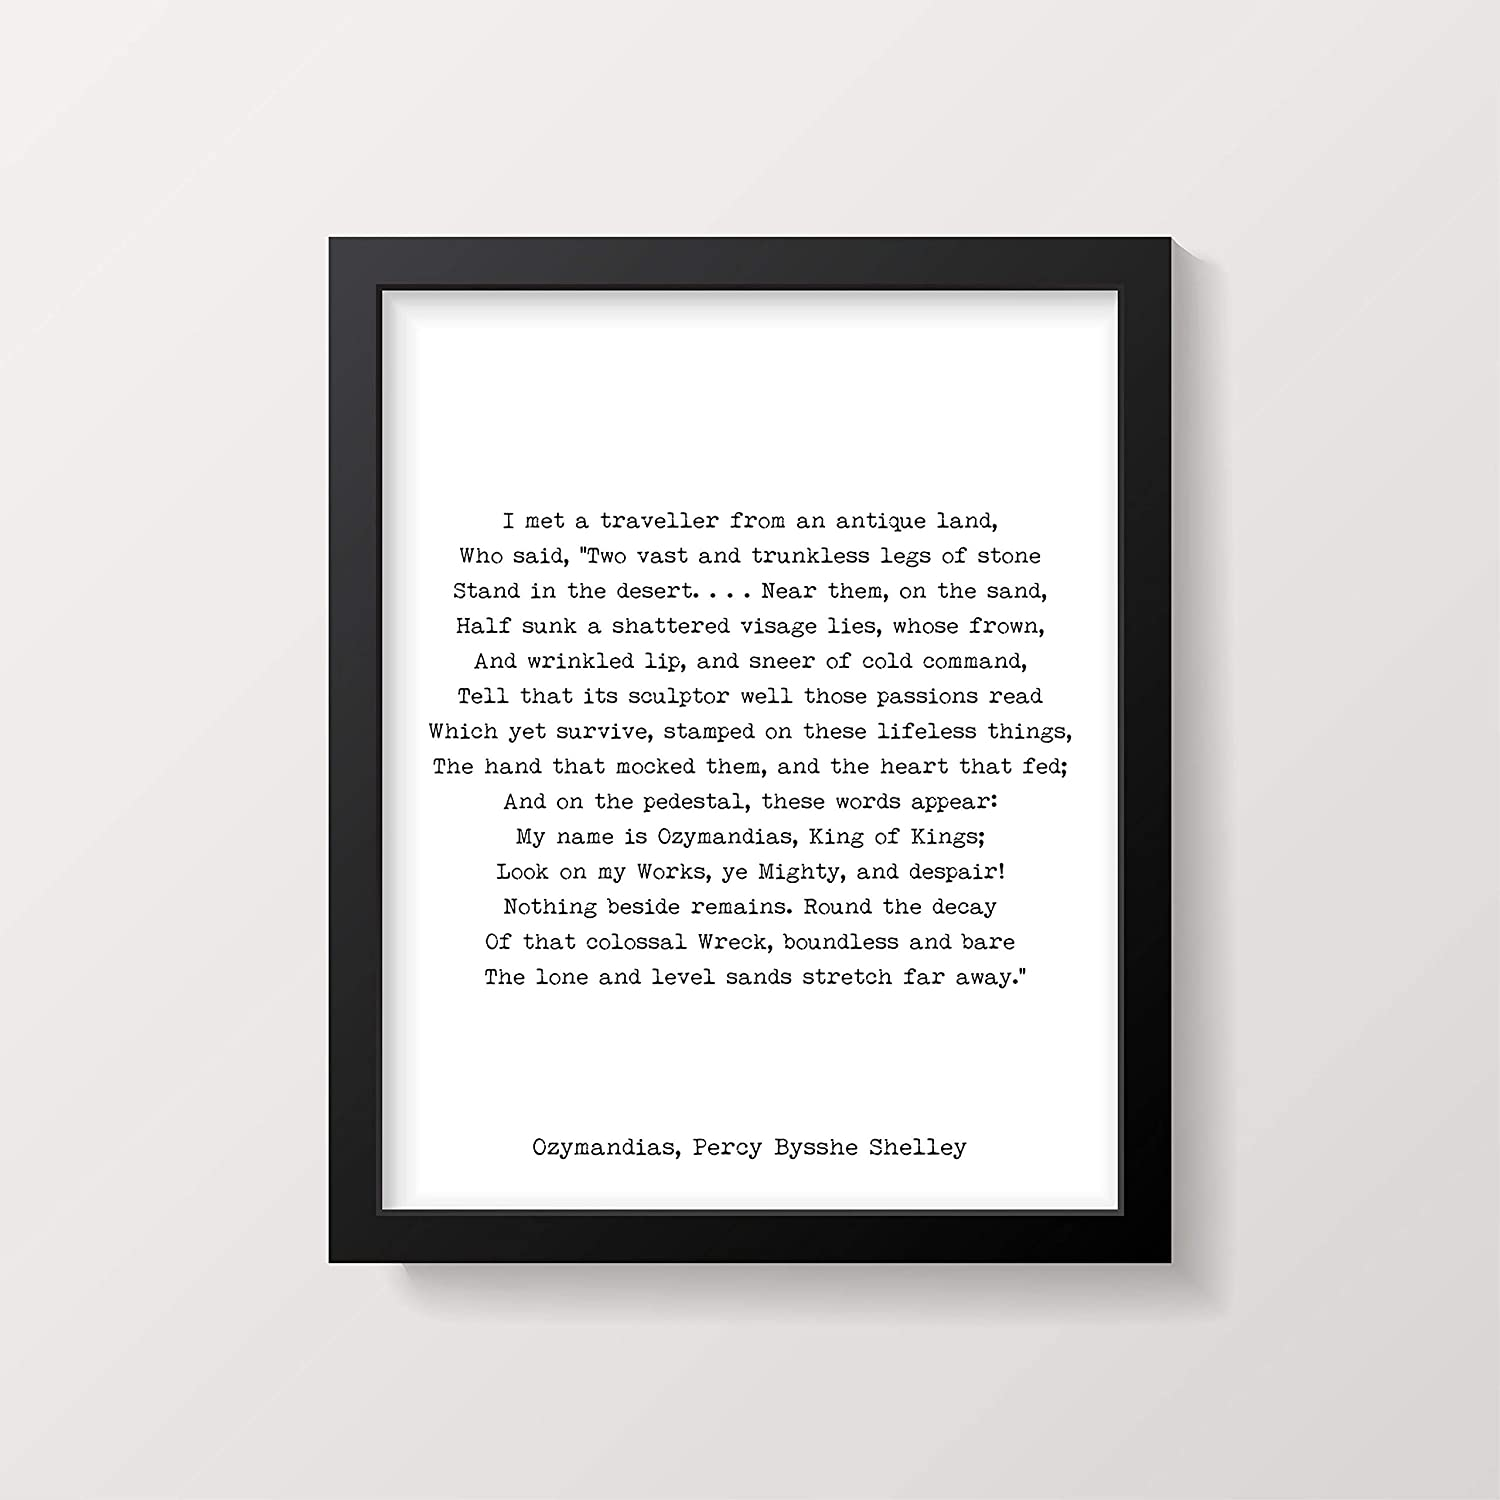 Arvier Ozymandias Poem Print Percy Bysshe Shelley Poetry Poster in Black White for Home Wall Decor FRAMED WALL ART